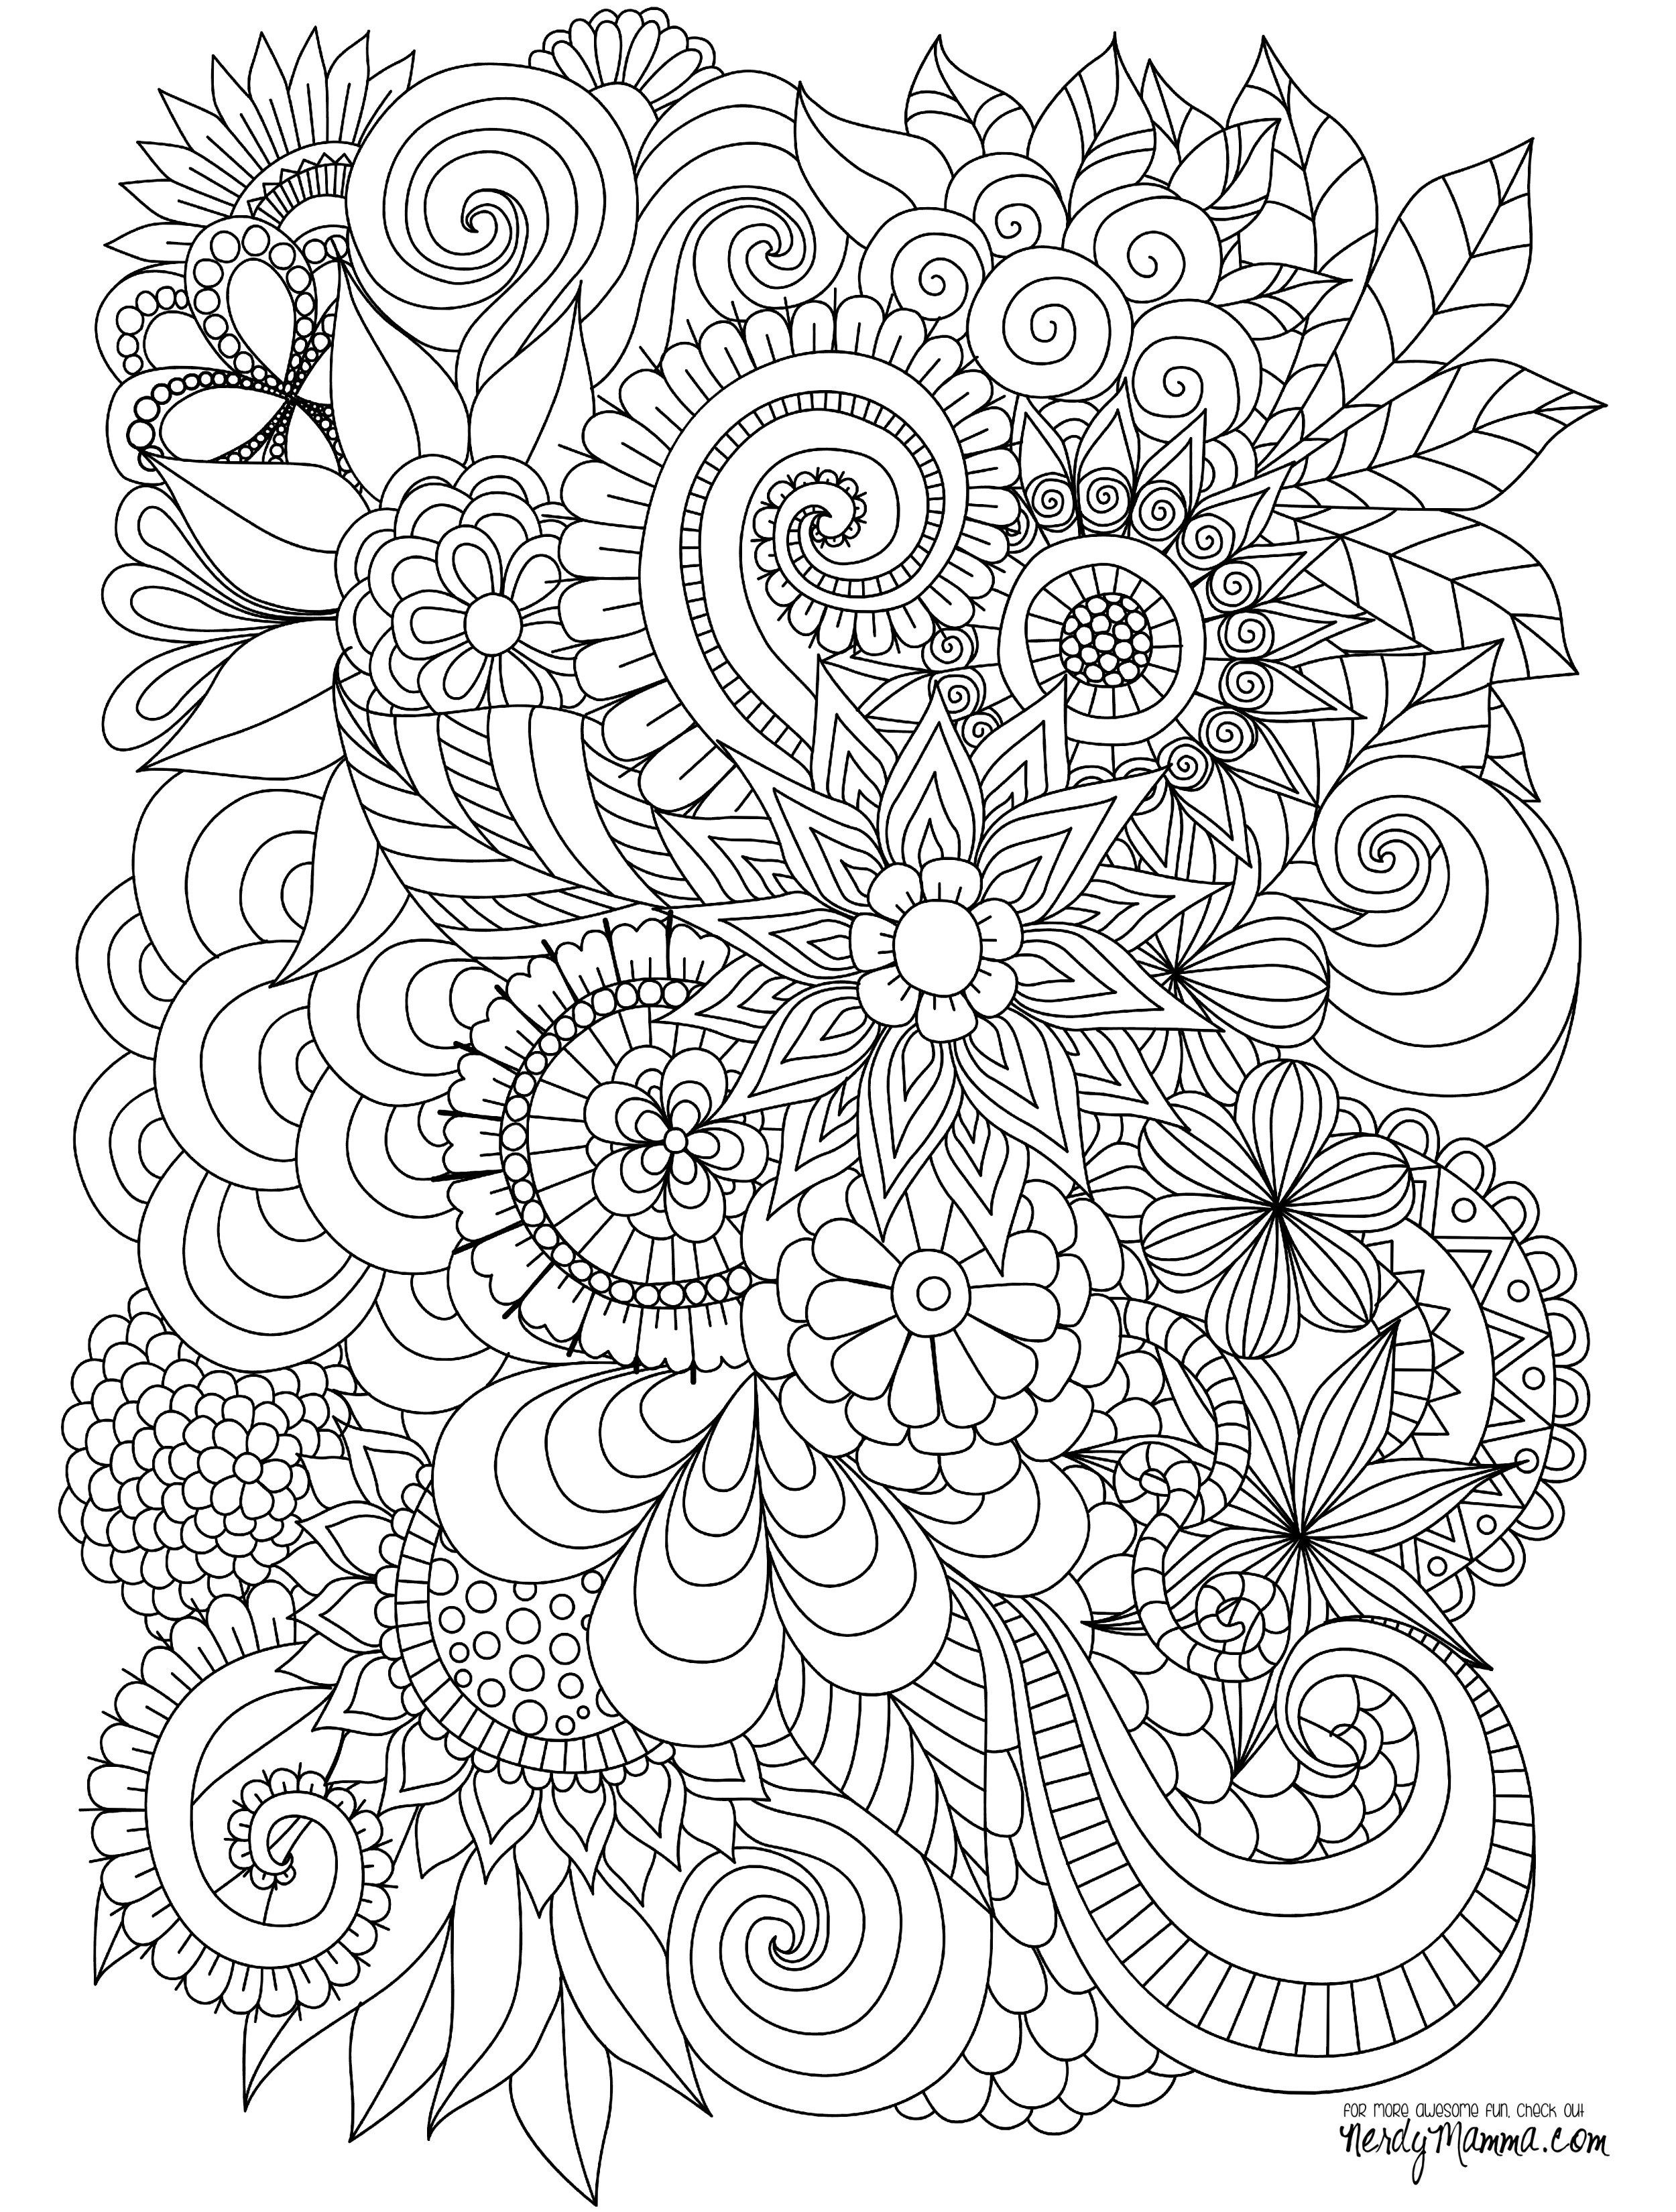 Swirly Coloring Pages  Collection 10i - Free Download